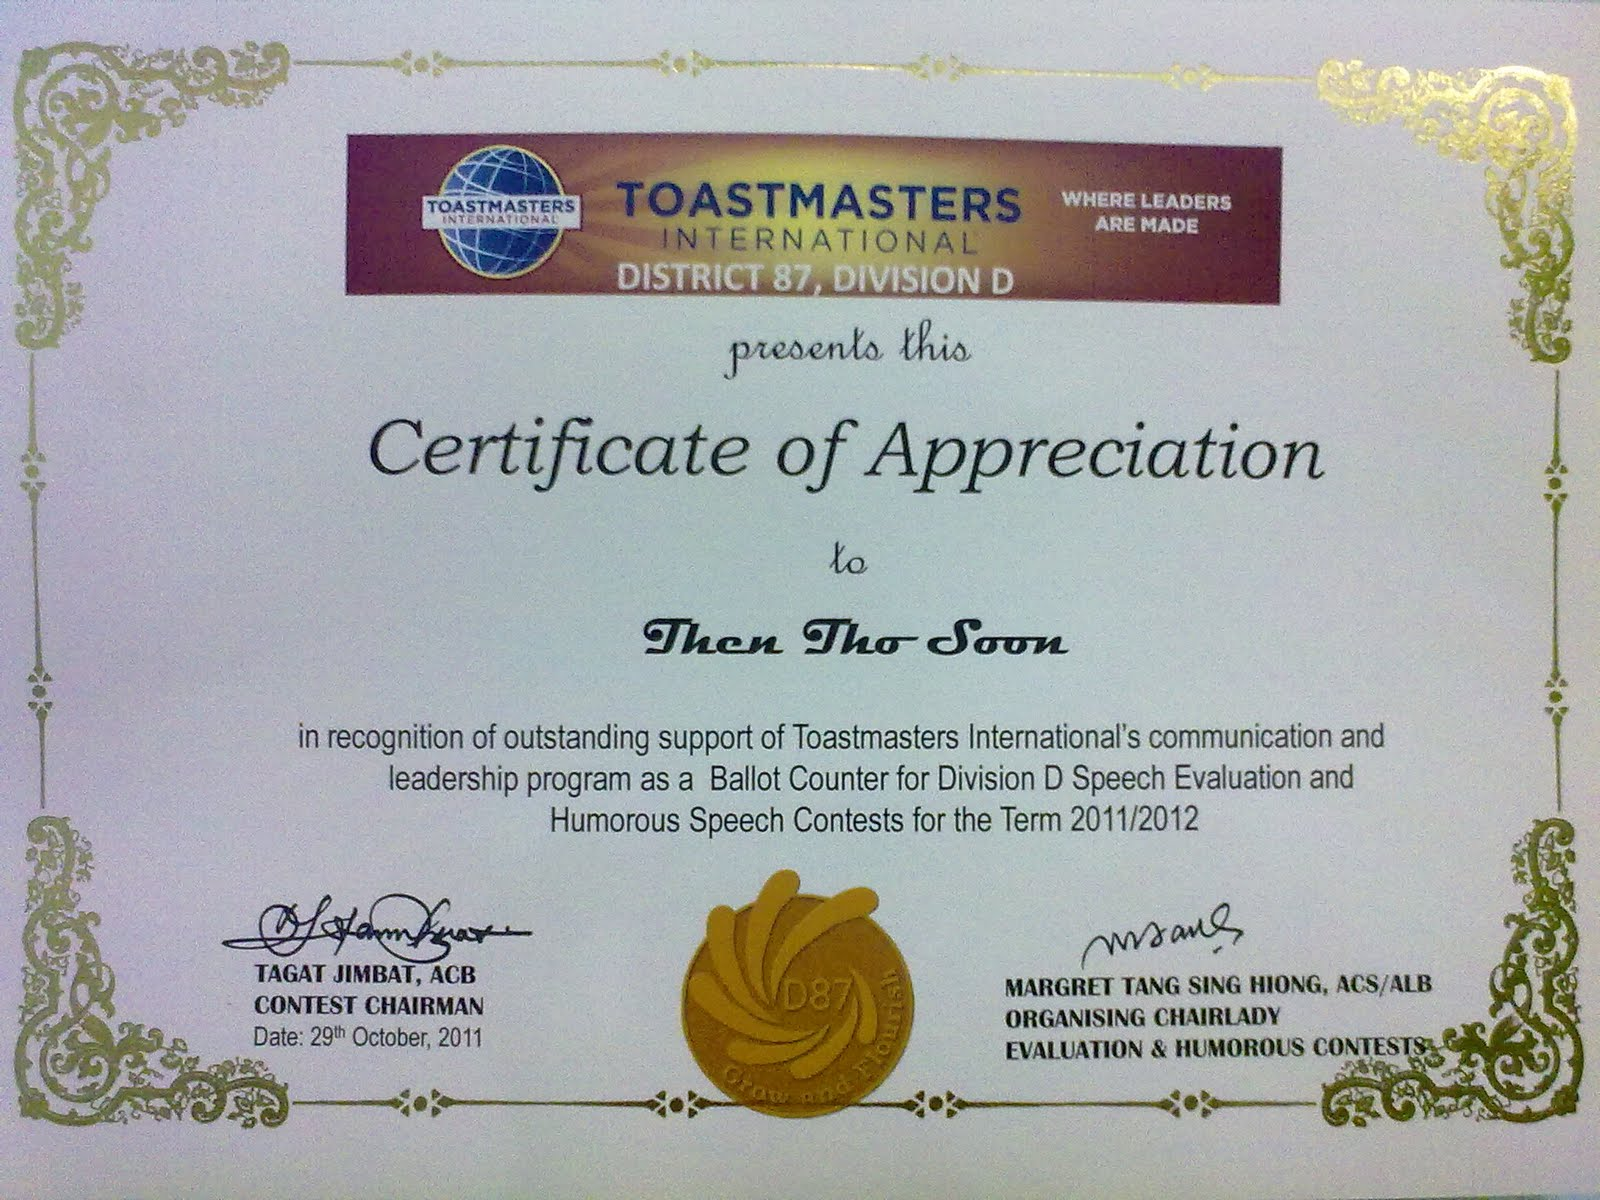 toastmasters certificate of appreciation template - letter of appreciation format picture ideas references